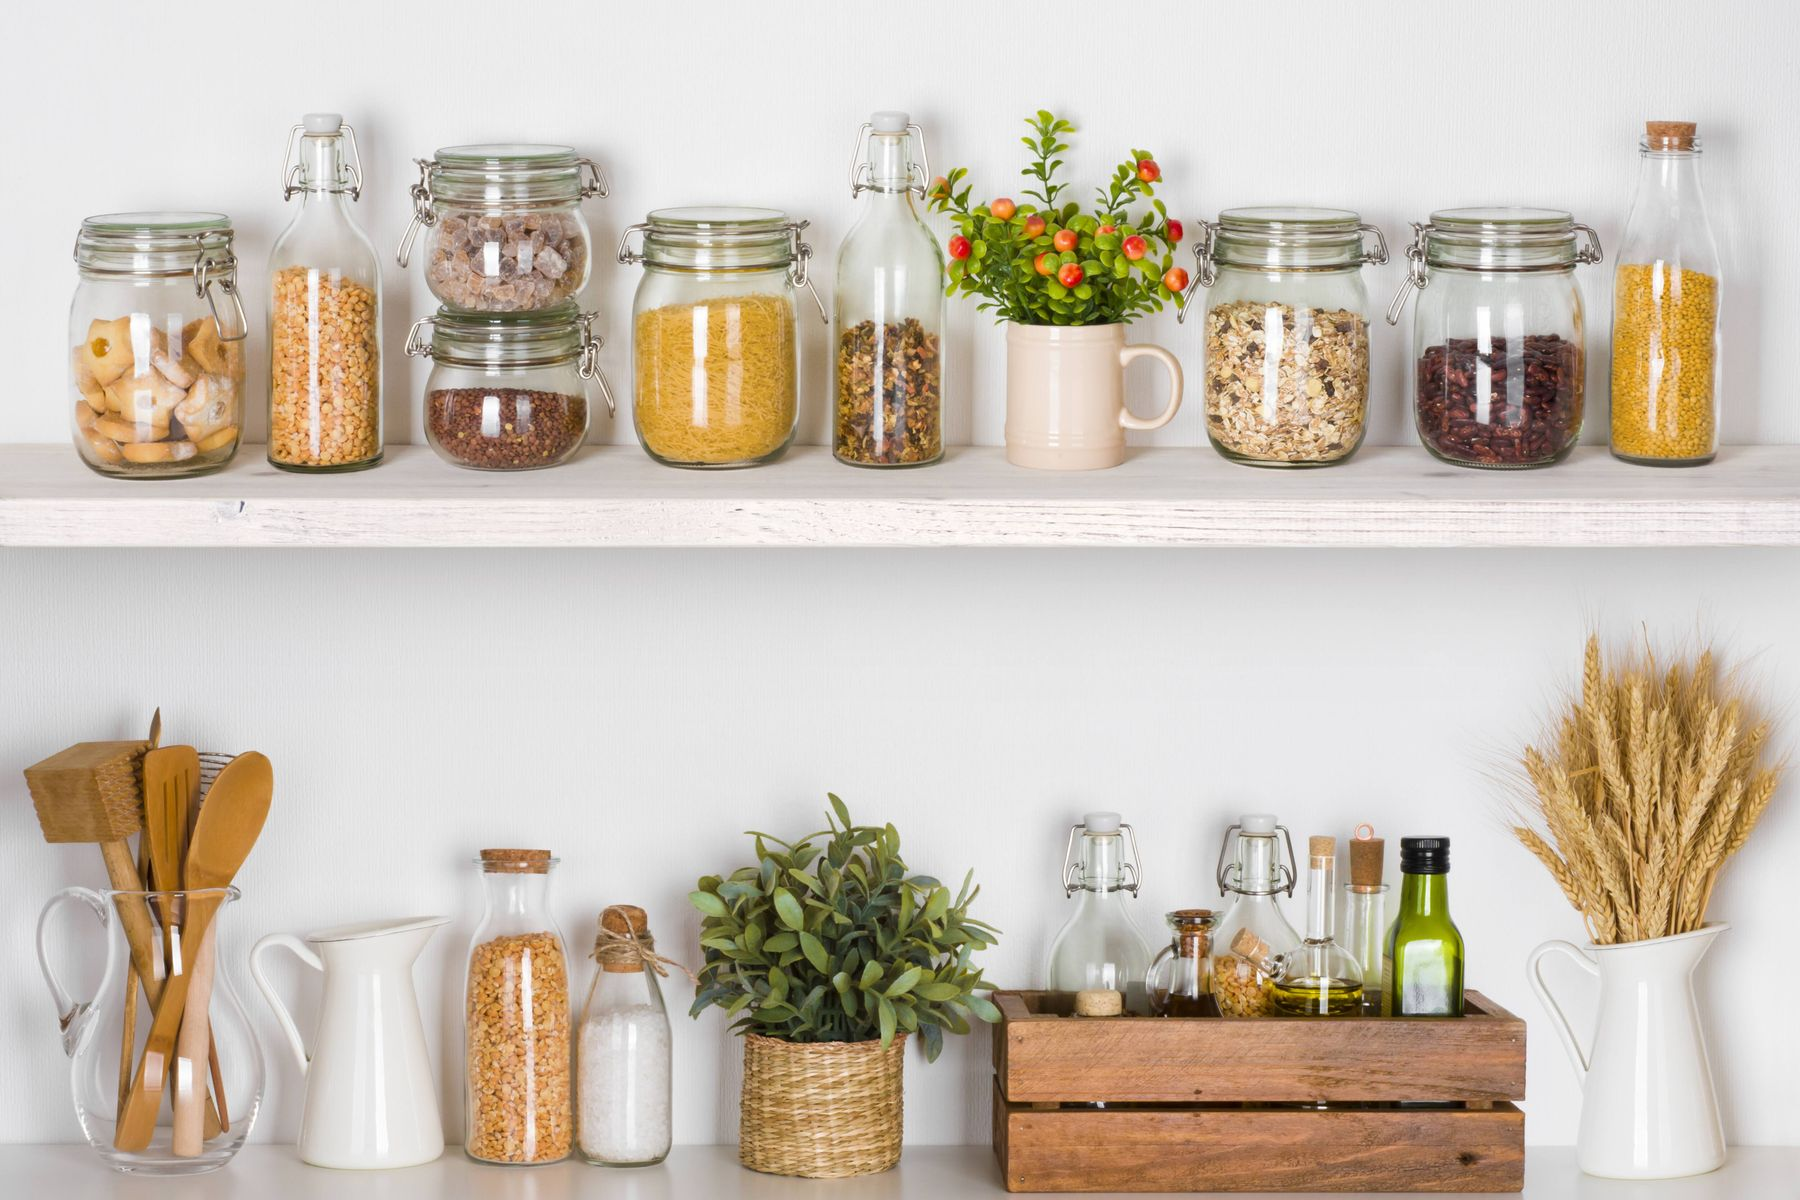 Mason jar crafts and containers sitting on a shelf with dried foods